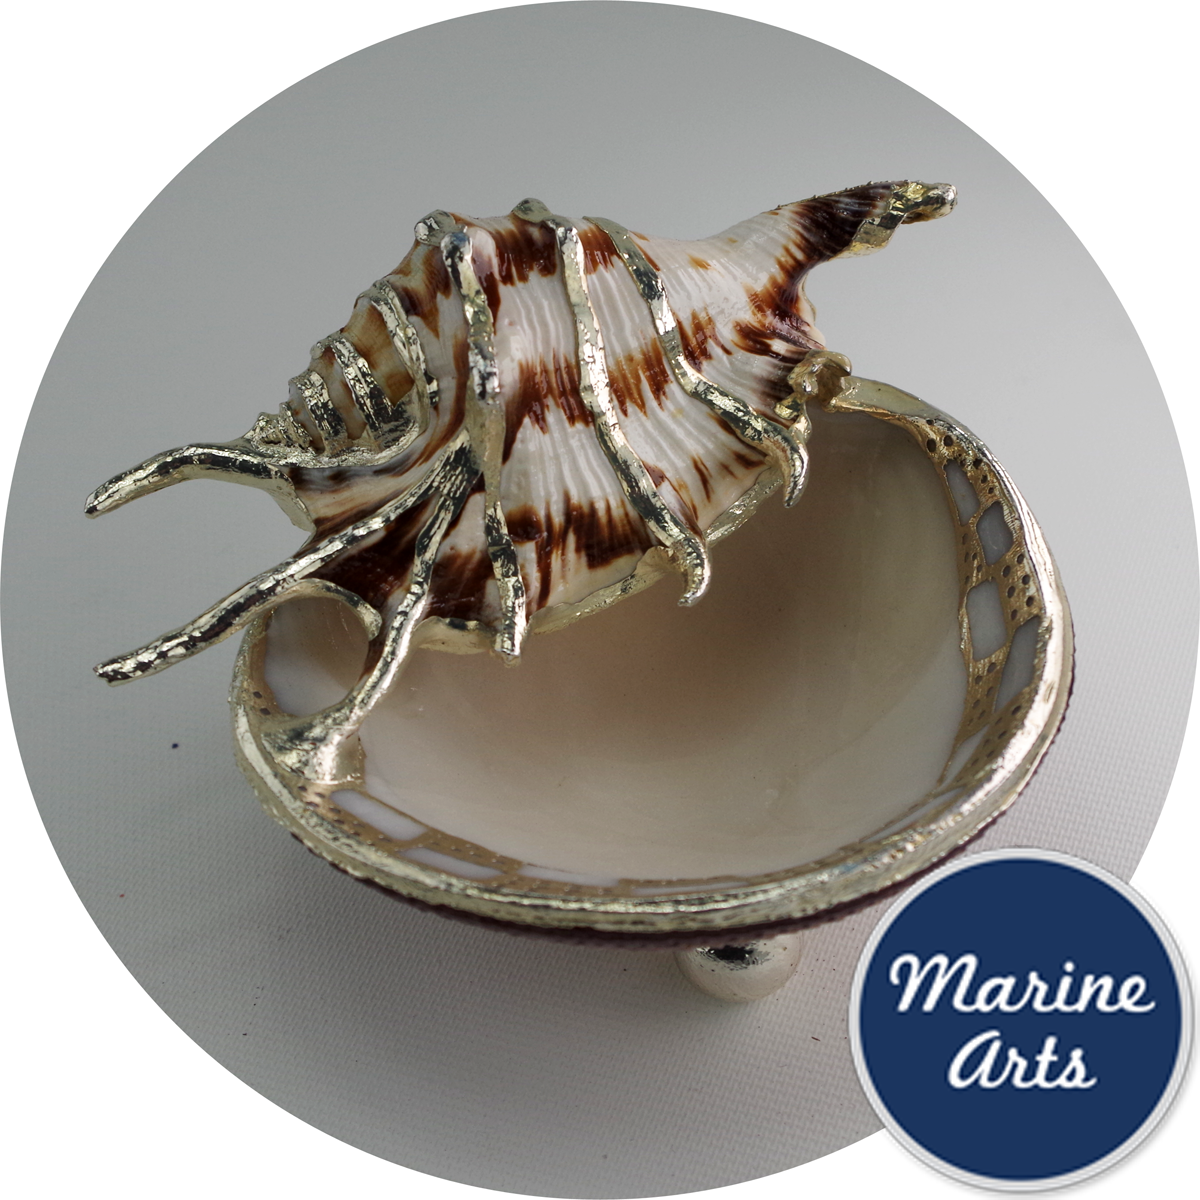 - Silver edge clam shell dish with shell accent